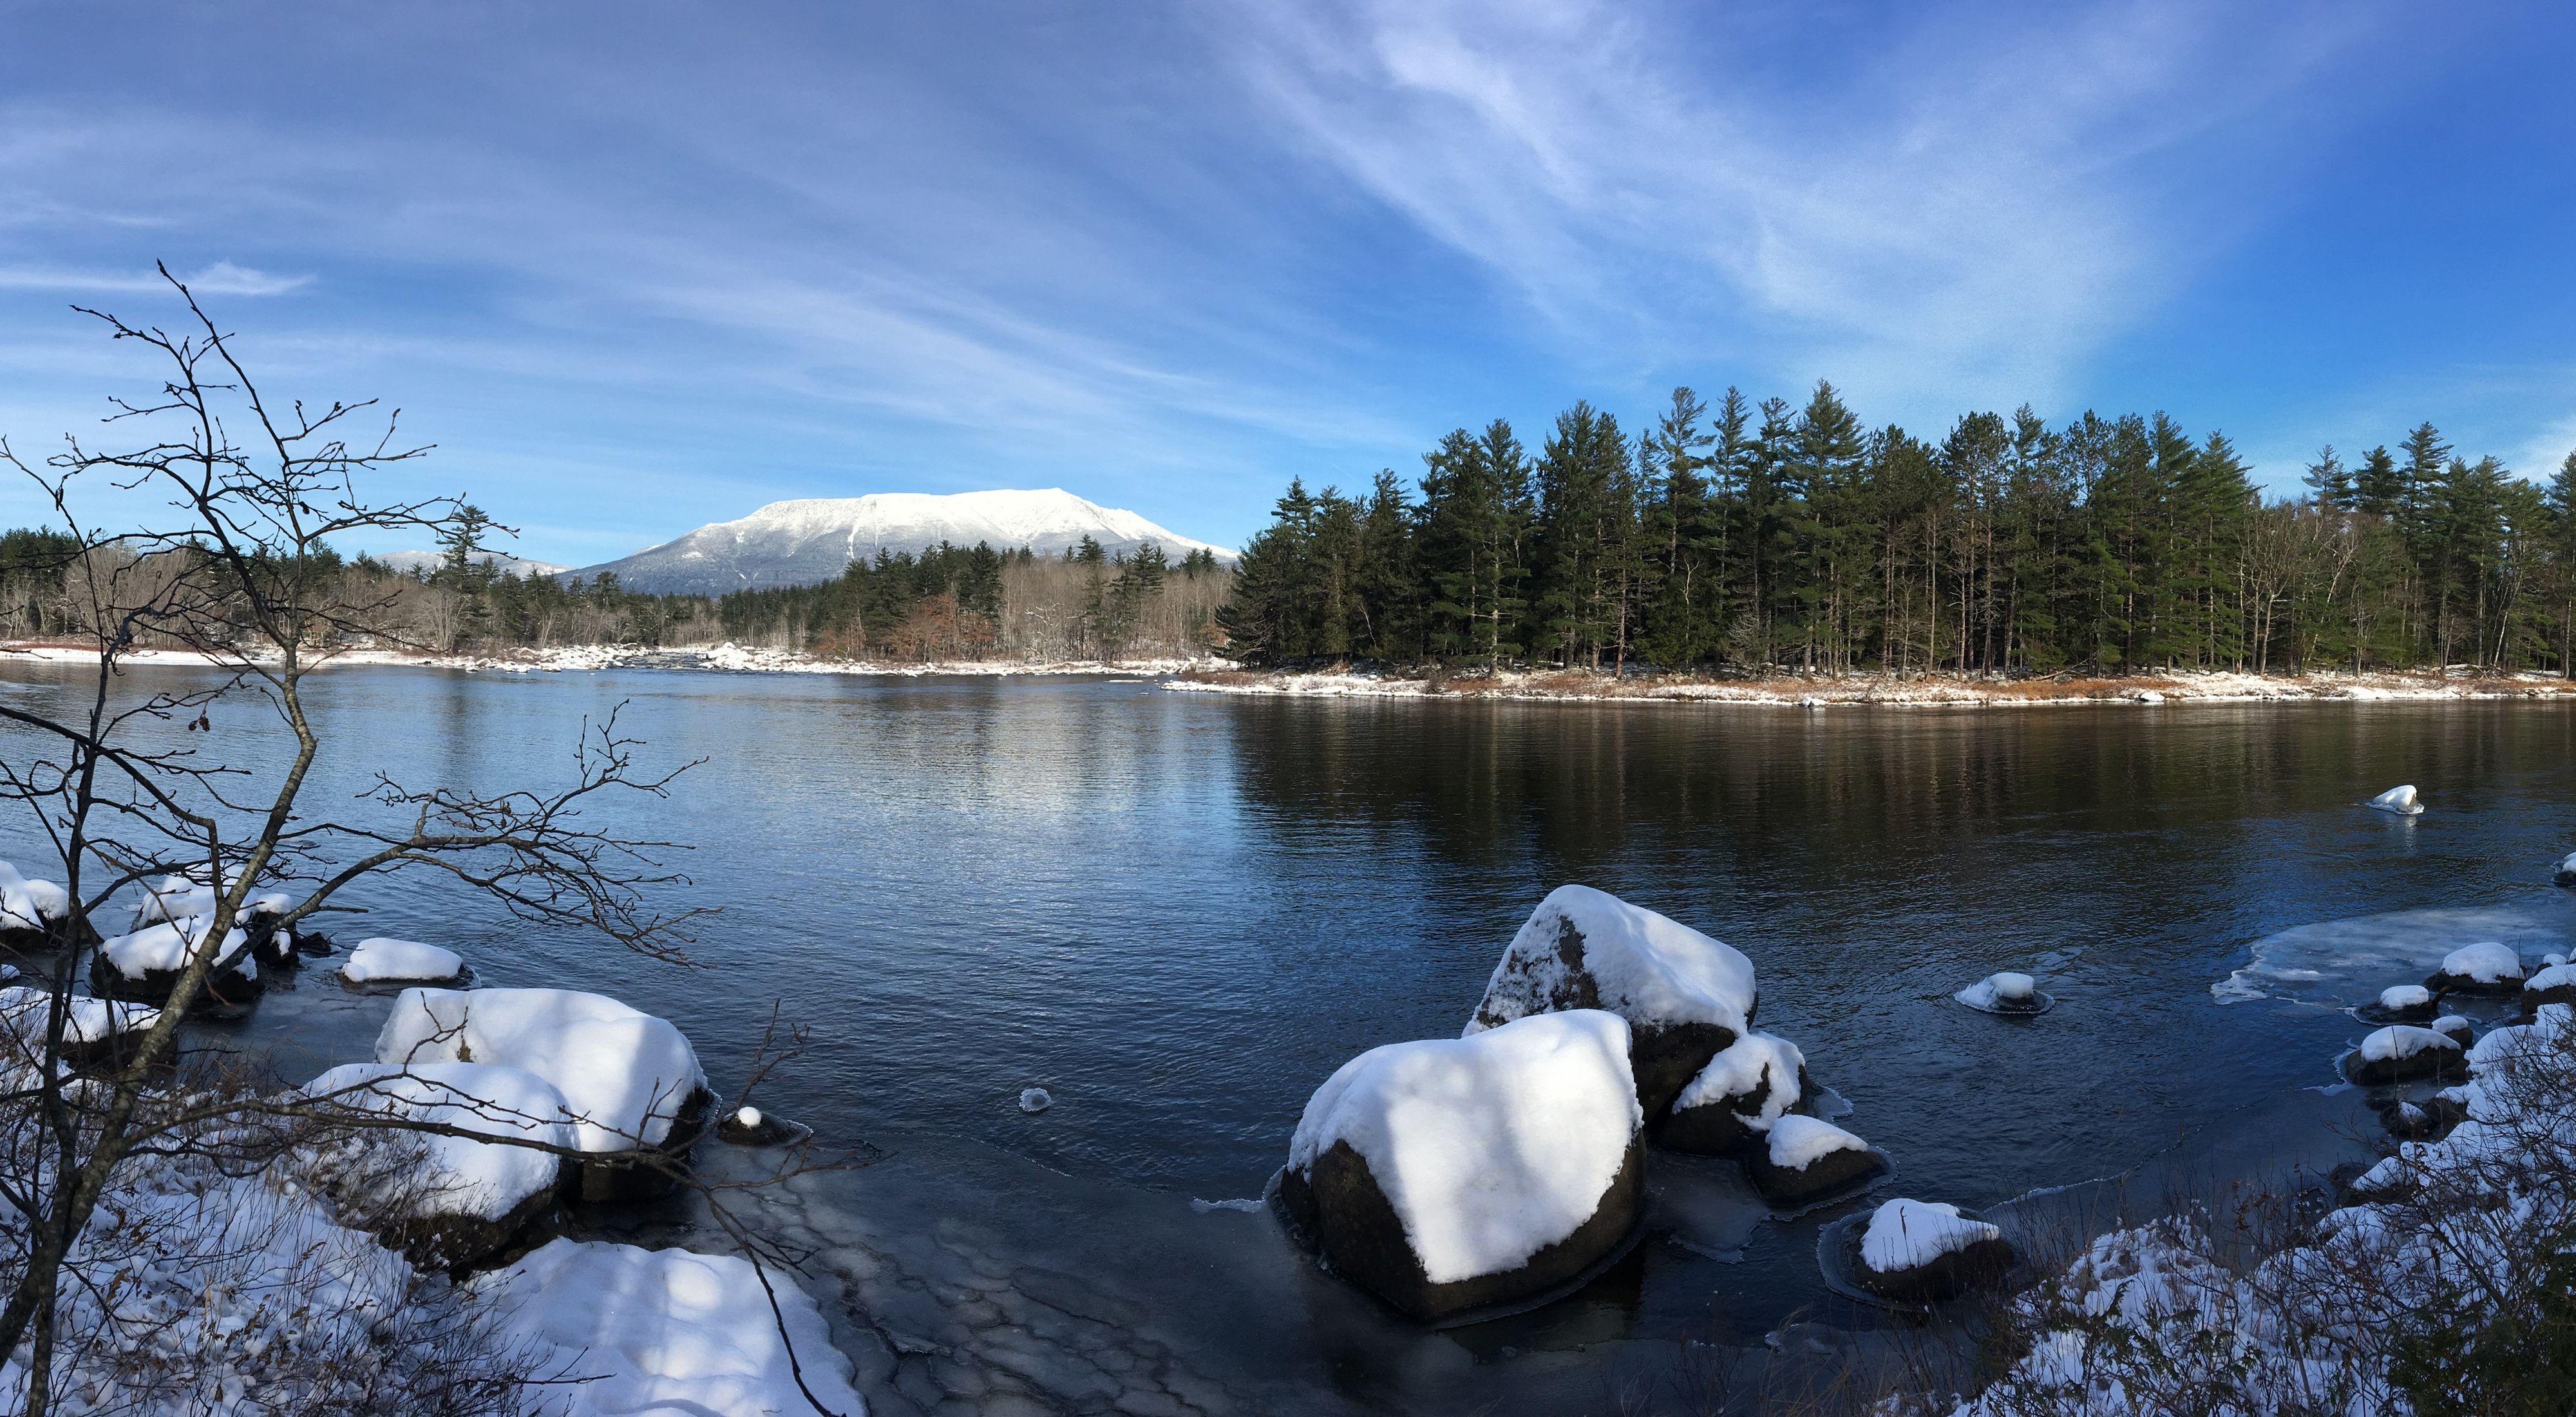 A view across a river of a distant Mount Katahdin with snow on its slopes.